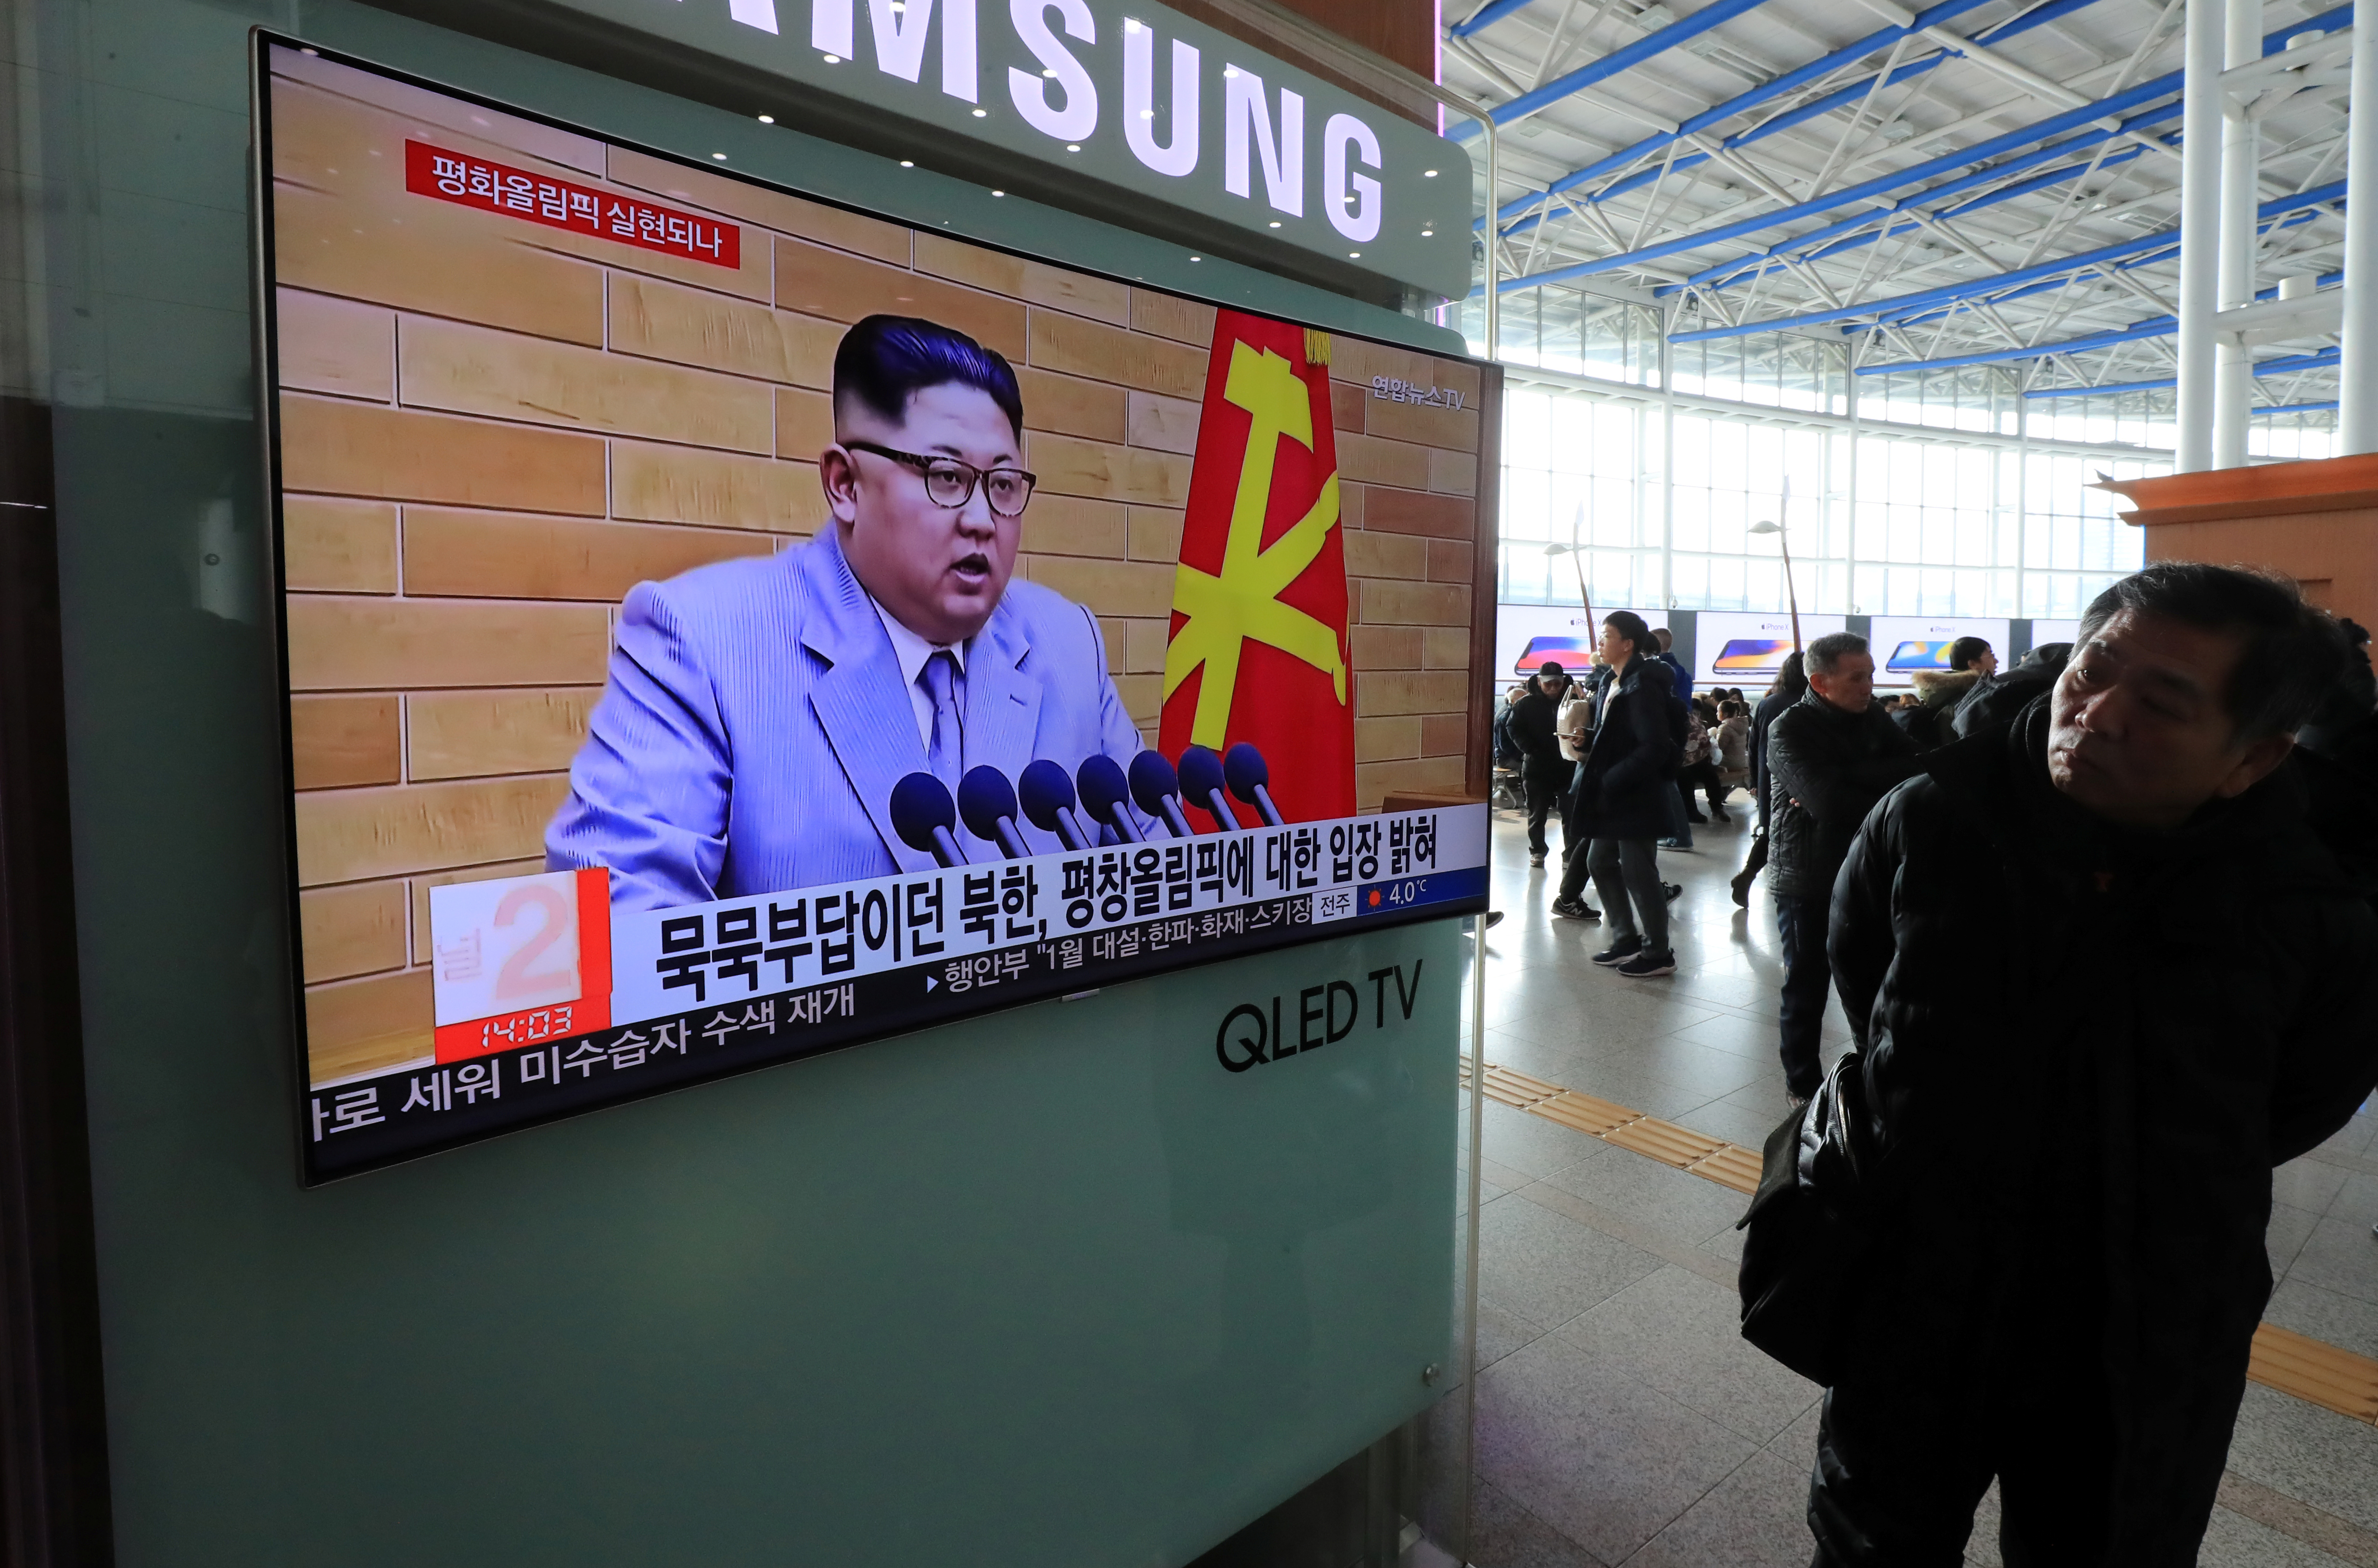 A man in Seoul, South Korea, watches a TV broadcasting a news report on North Korea's leader Kim Jong-un speaking during a New Year's Day speech.